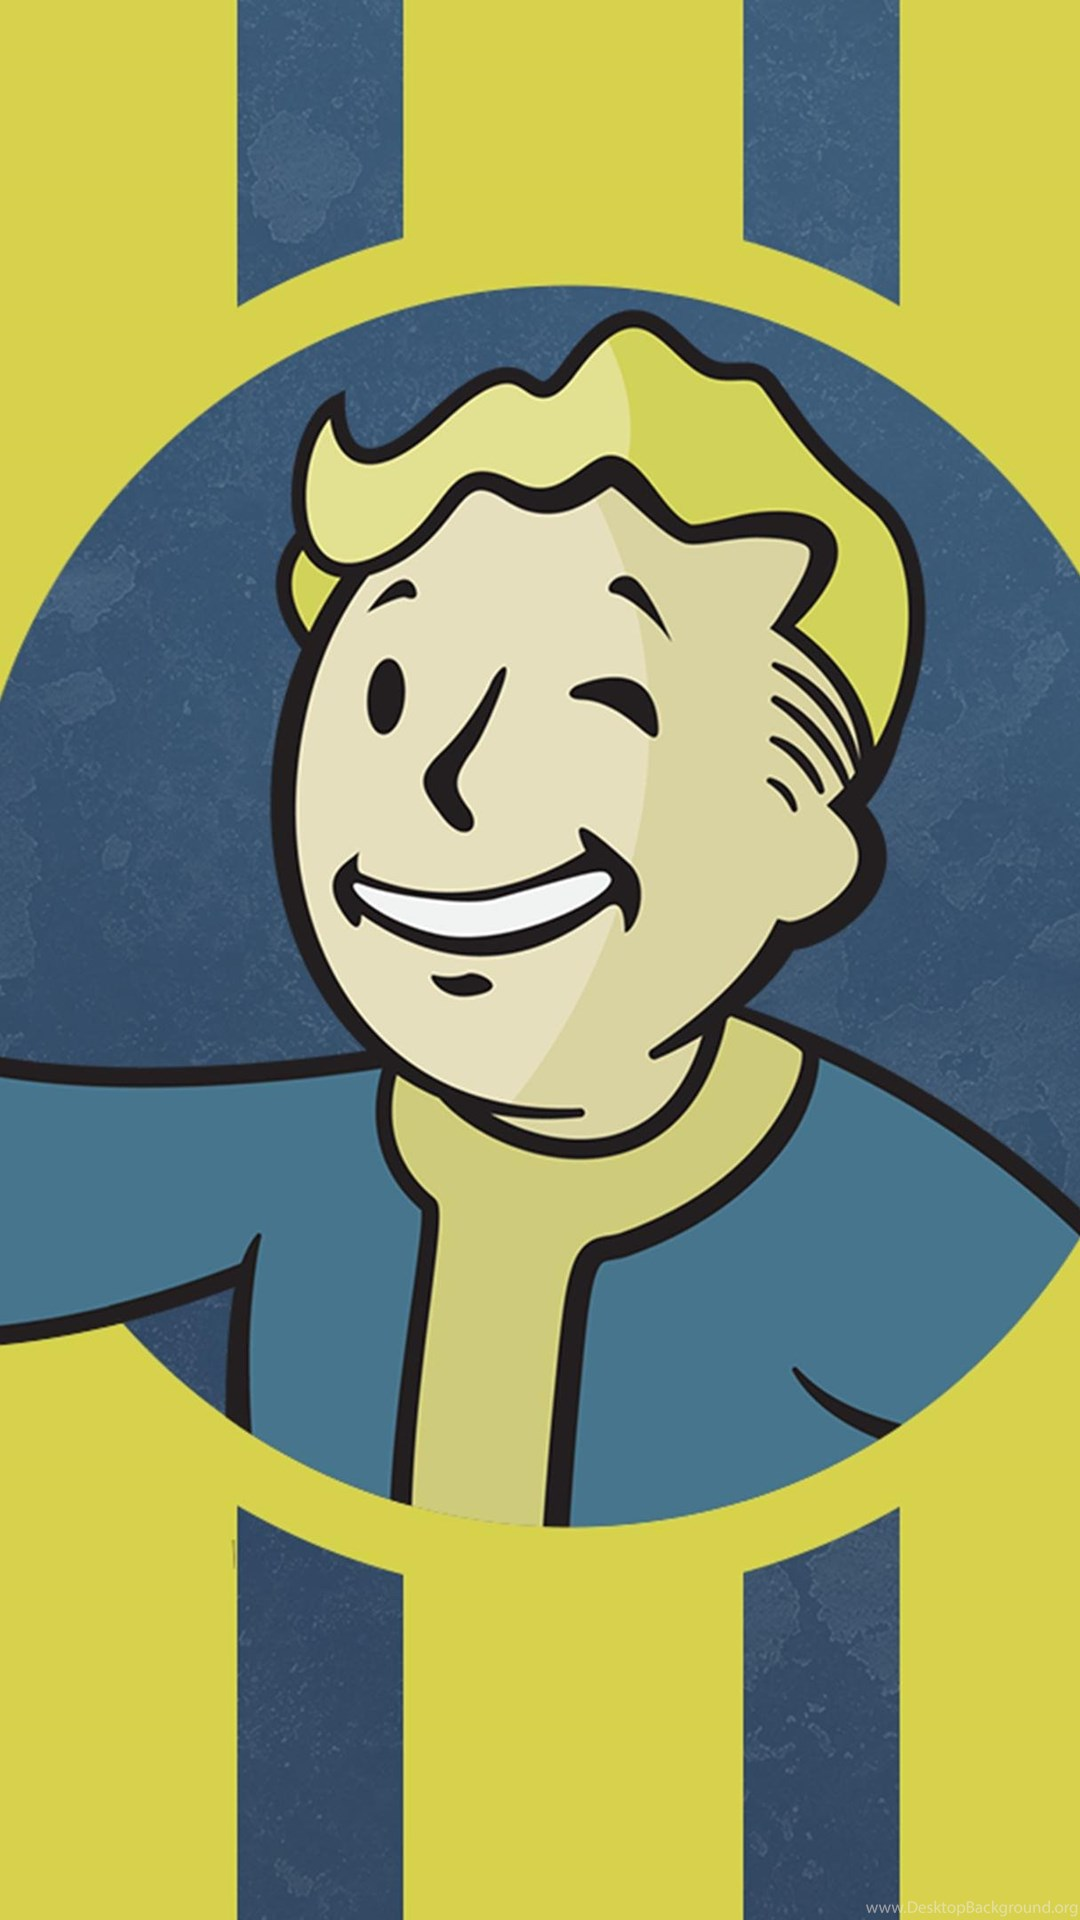 Fall Out Boy Wallpaper For Android Fallout 4 Vault Boy Wallpapers Prints One Canvas Desktop